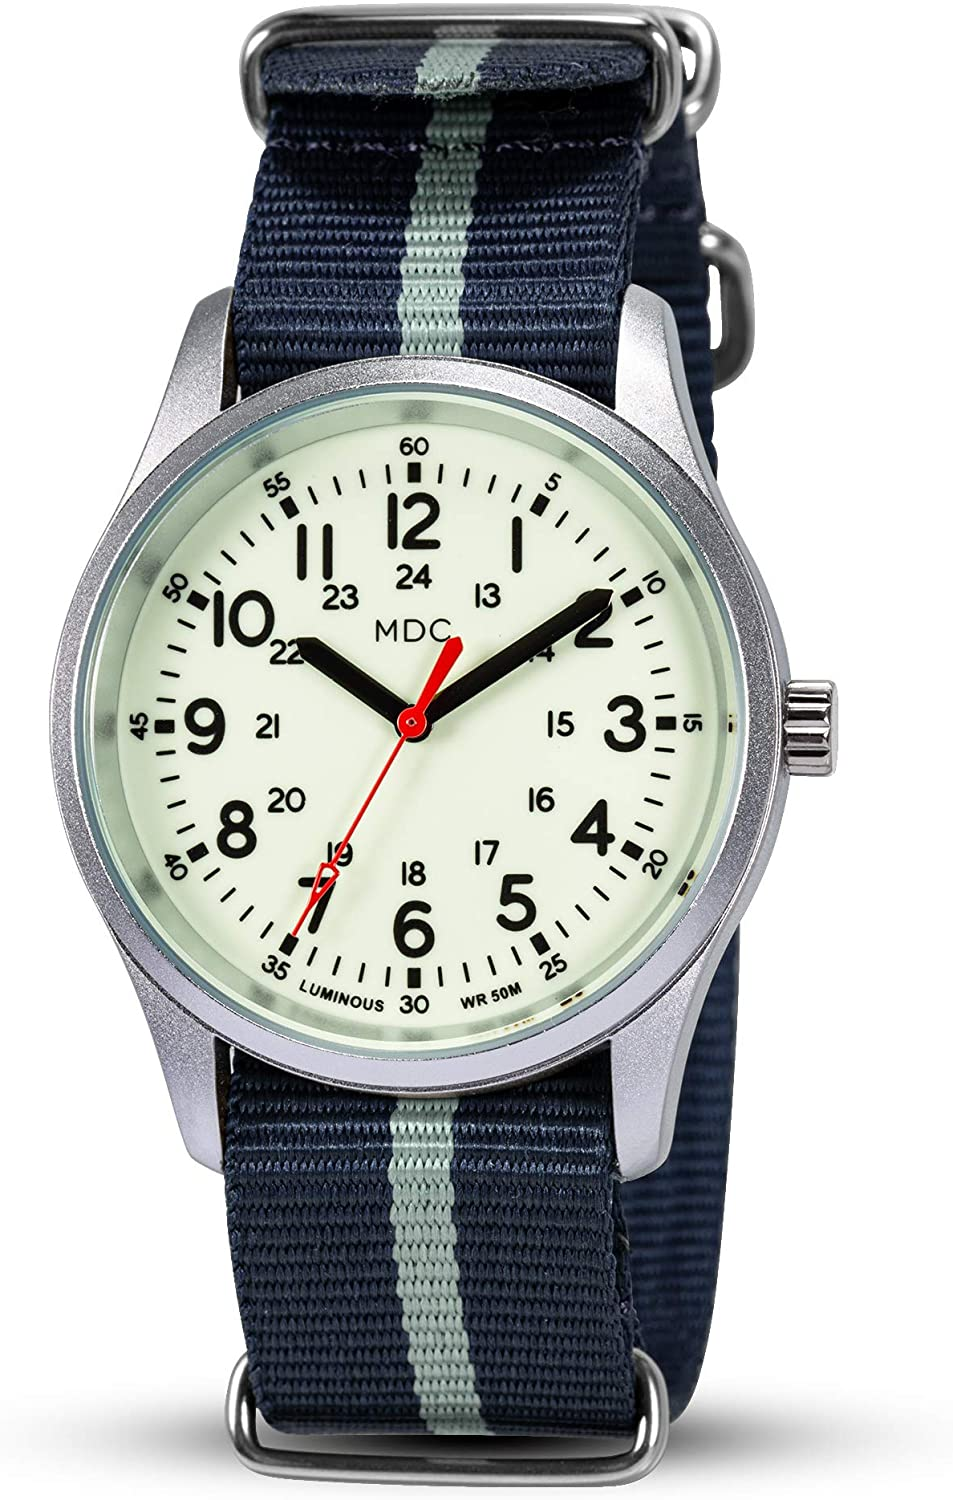 MDC Glow in The Dark Watches Field List price Choice Watch Men Military for Outdoo